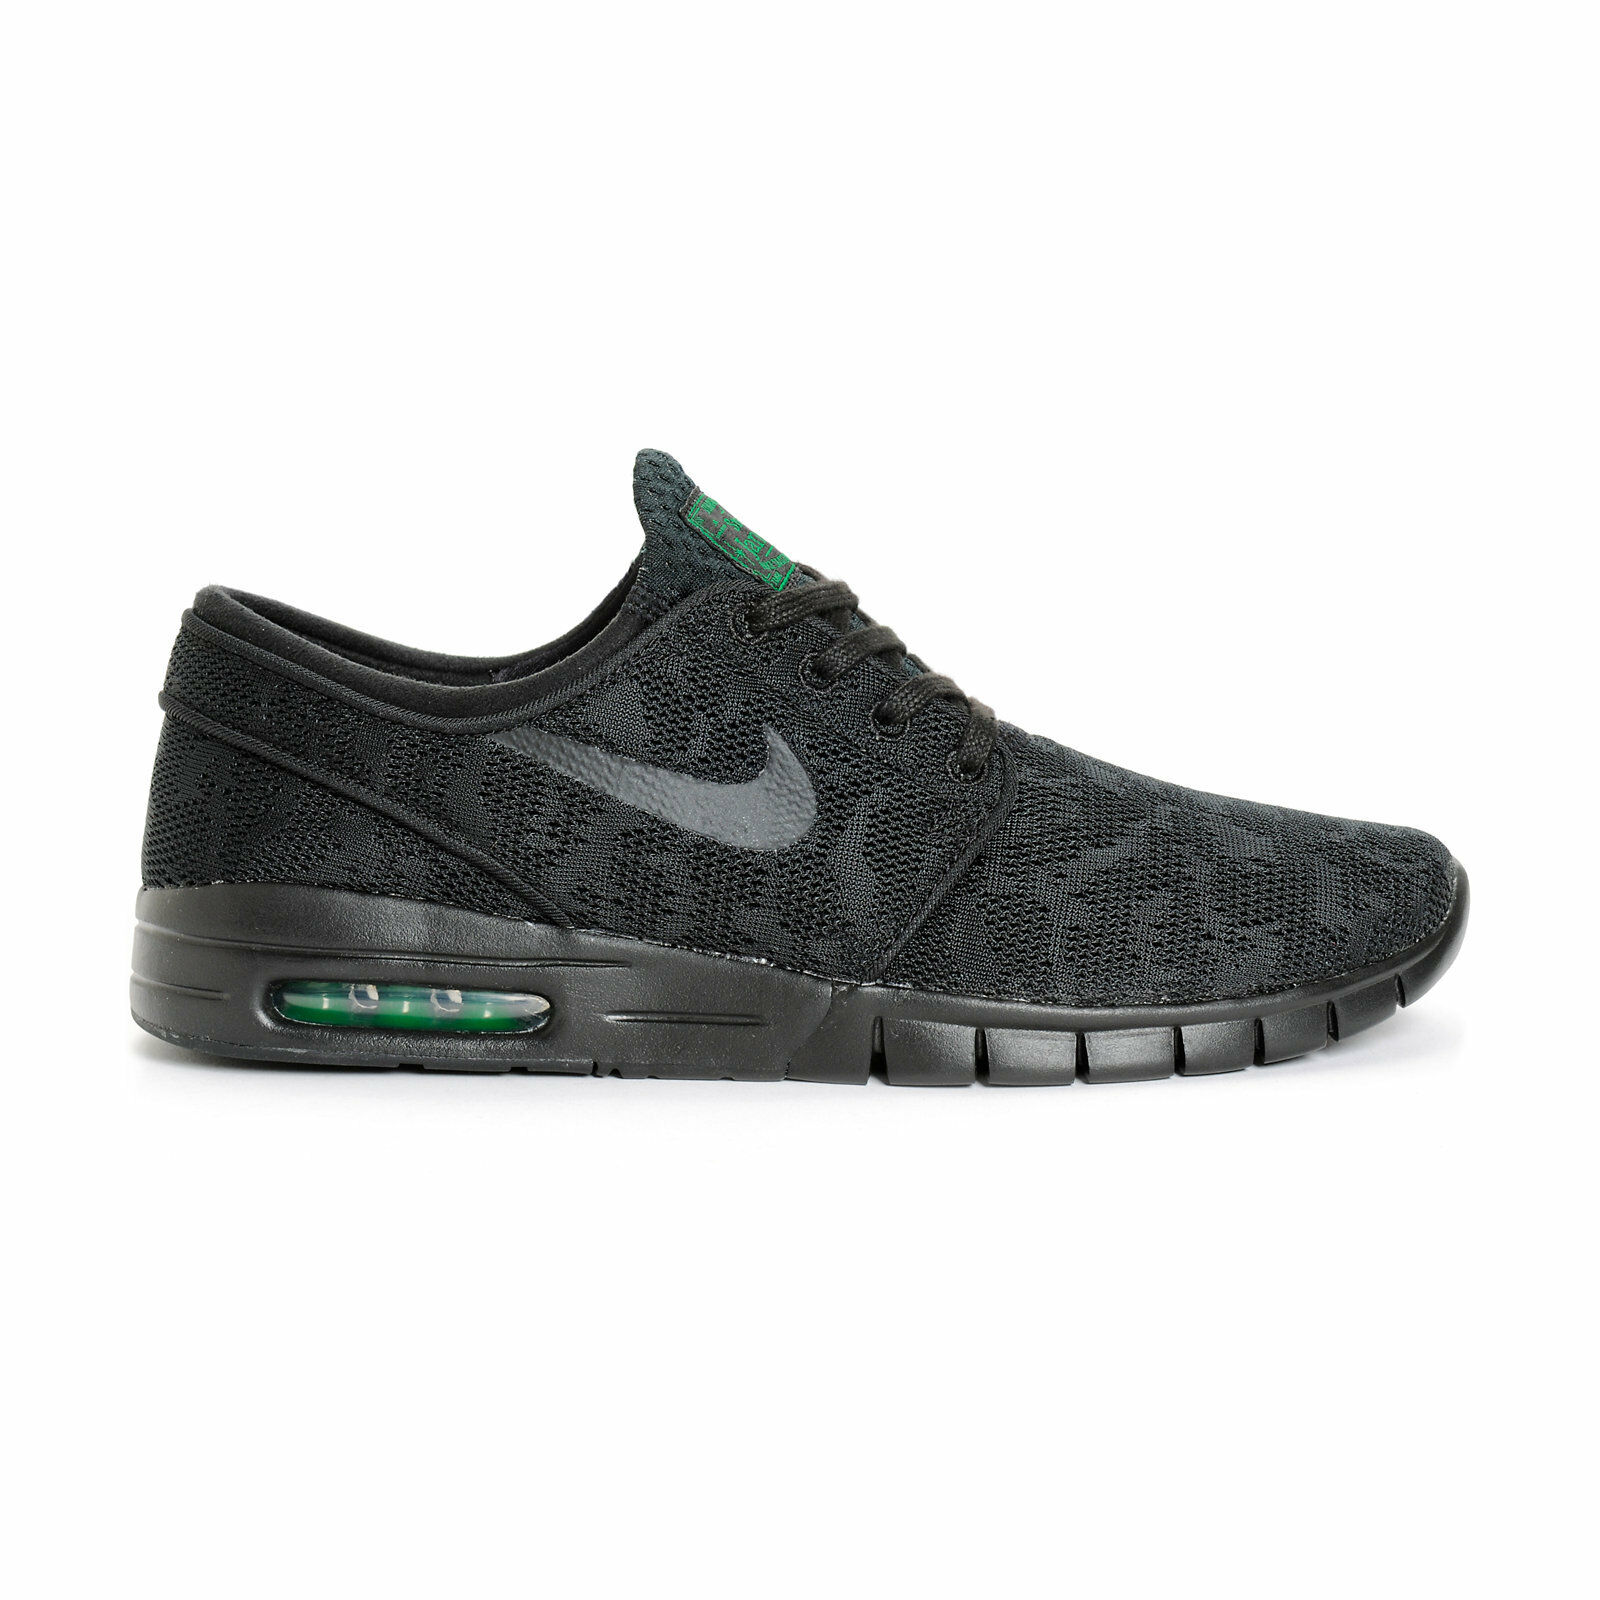 Nike STEFAN Green JANOSKI MAX Black Black-Pine Green STEFAN 631303-003 (352) Men's Shoes b7acb2